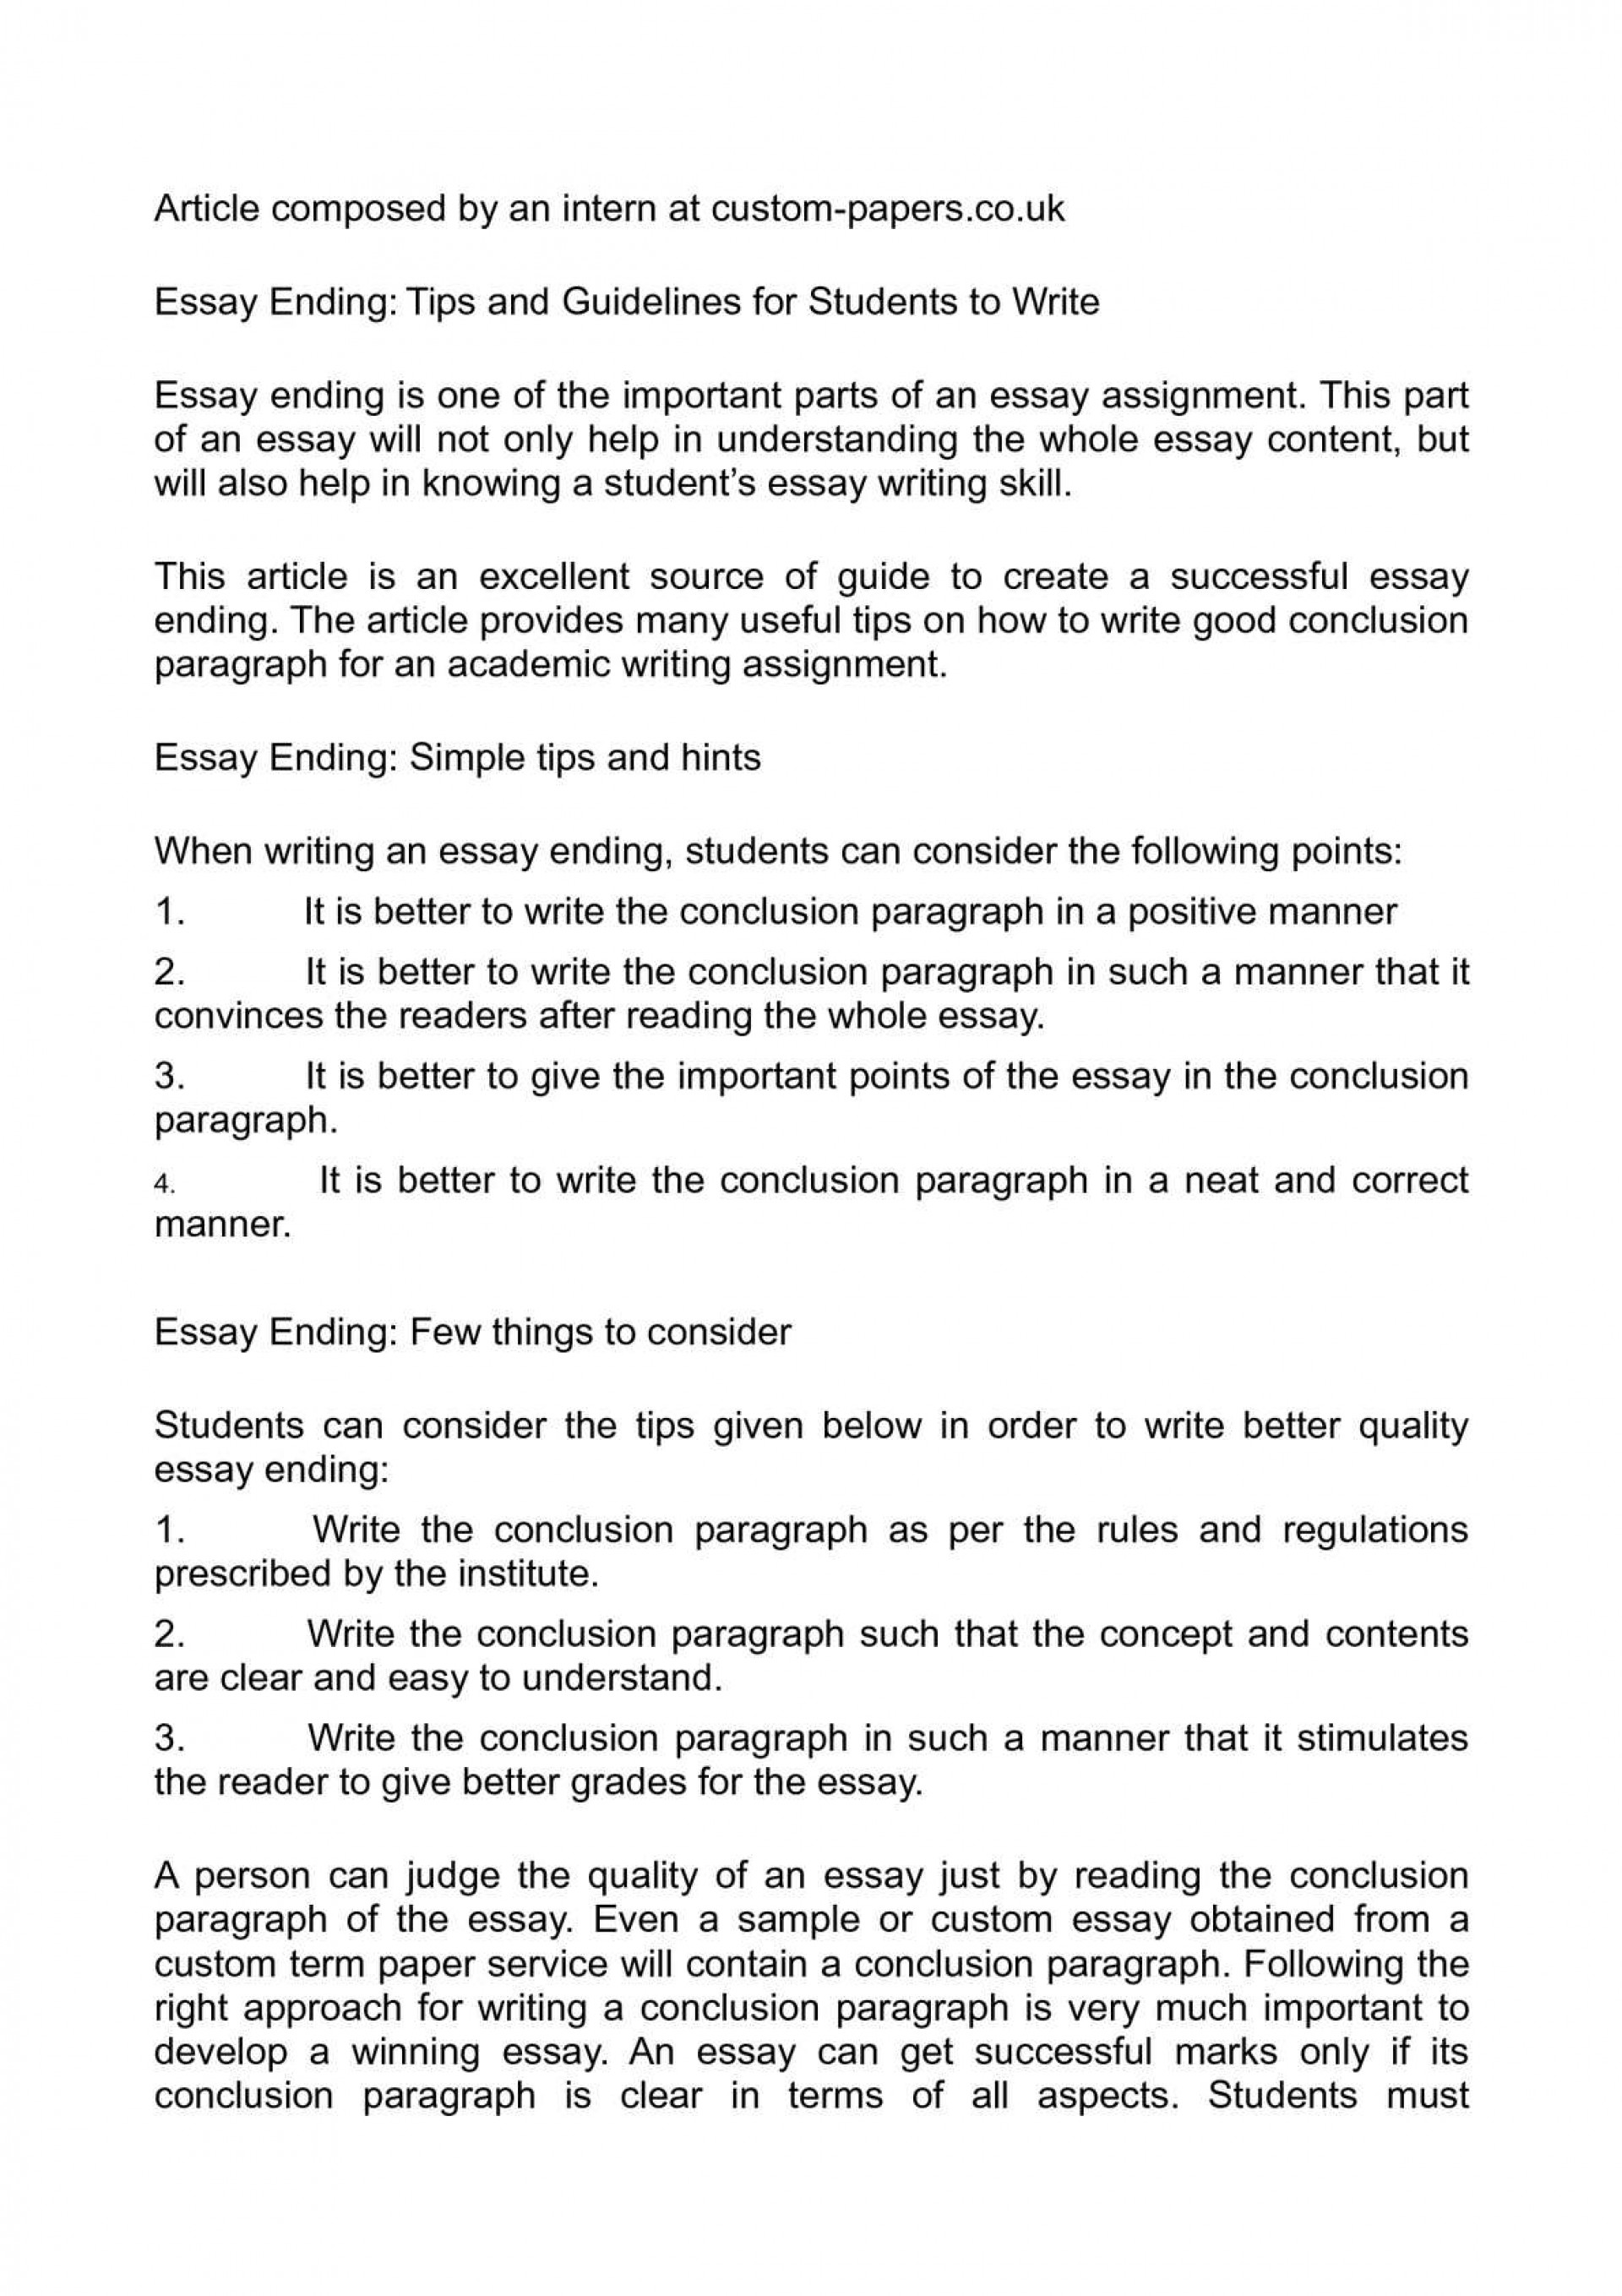 001 Parts Of An Essay Ending Tips And Guidelines For Students To Write Writing Persuasi Pdf Three Persuasive Stupendous Quiz Argumentative Introduction Body Conclusion Paragraph In 1920